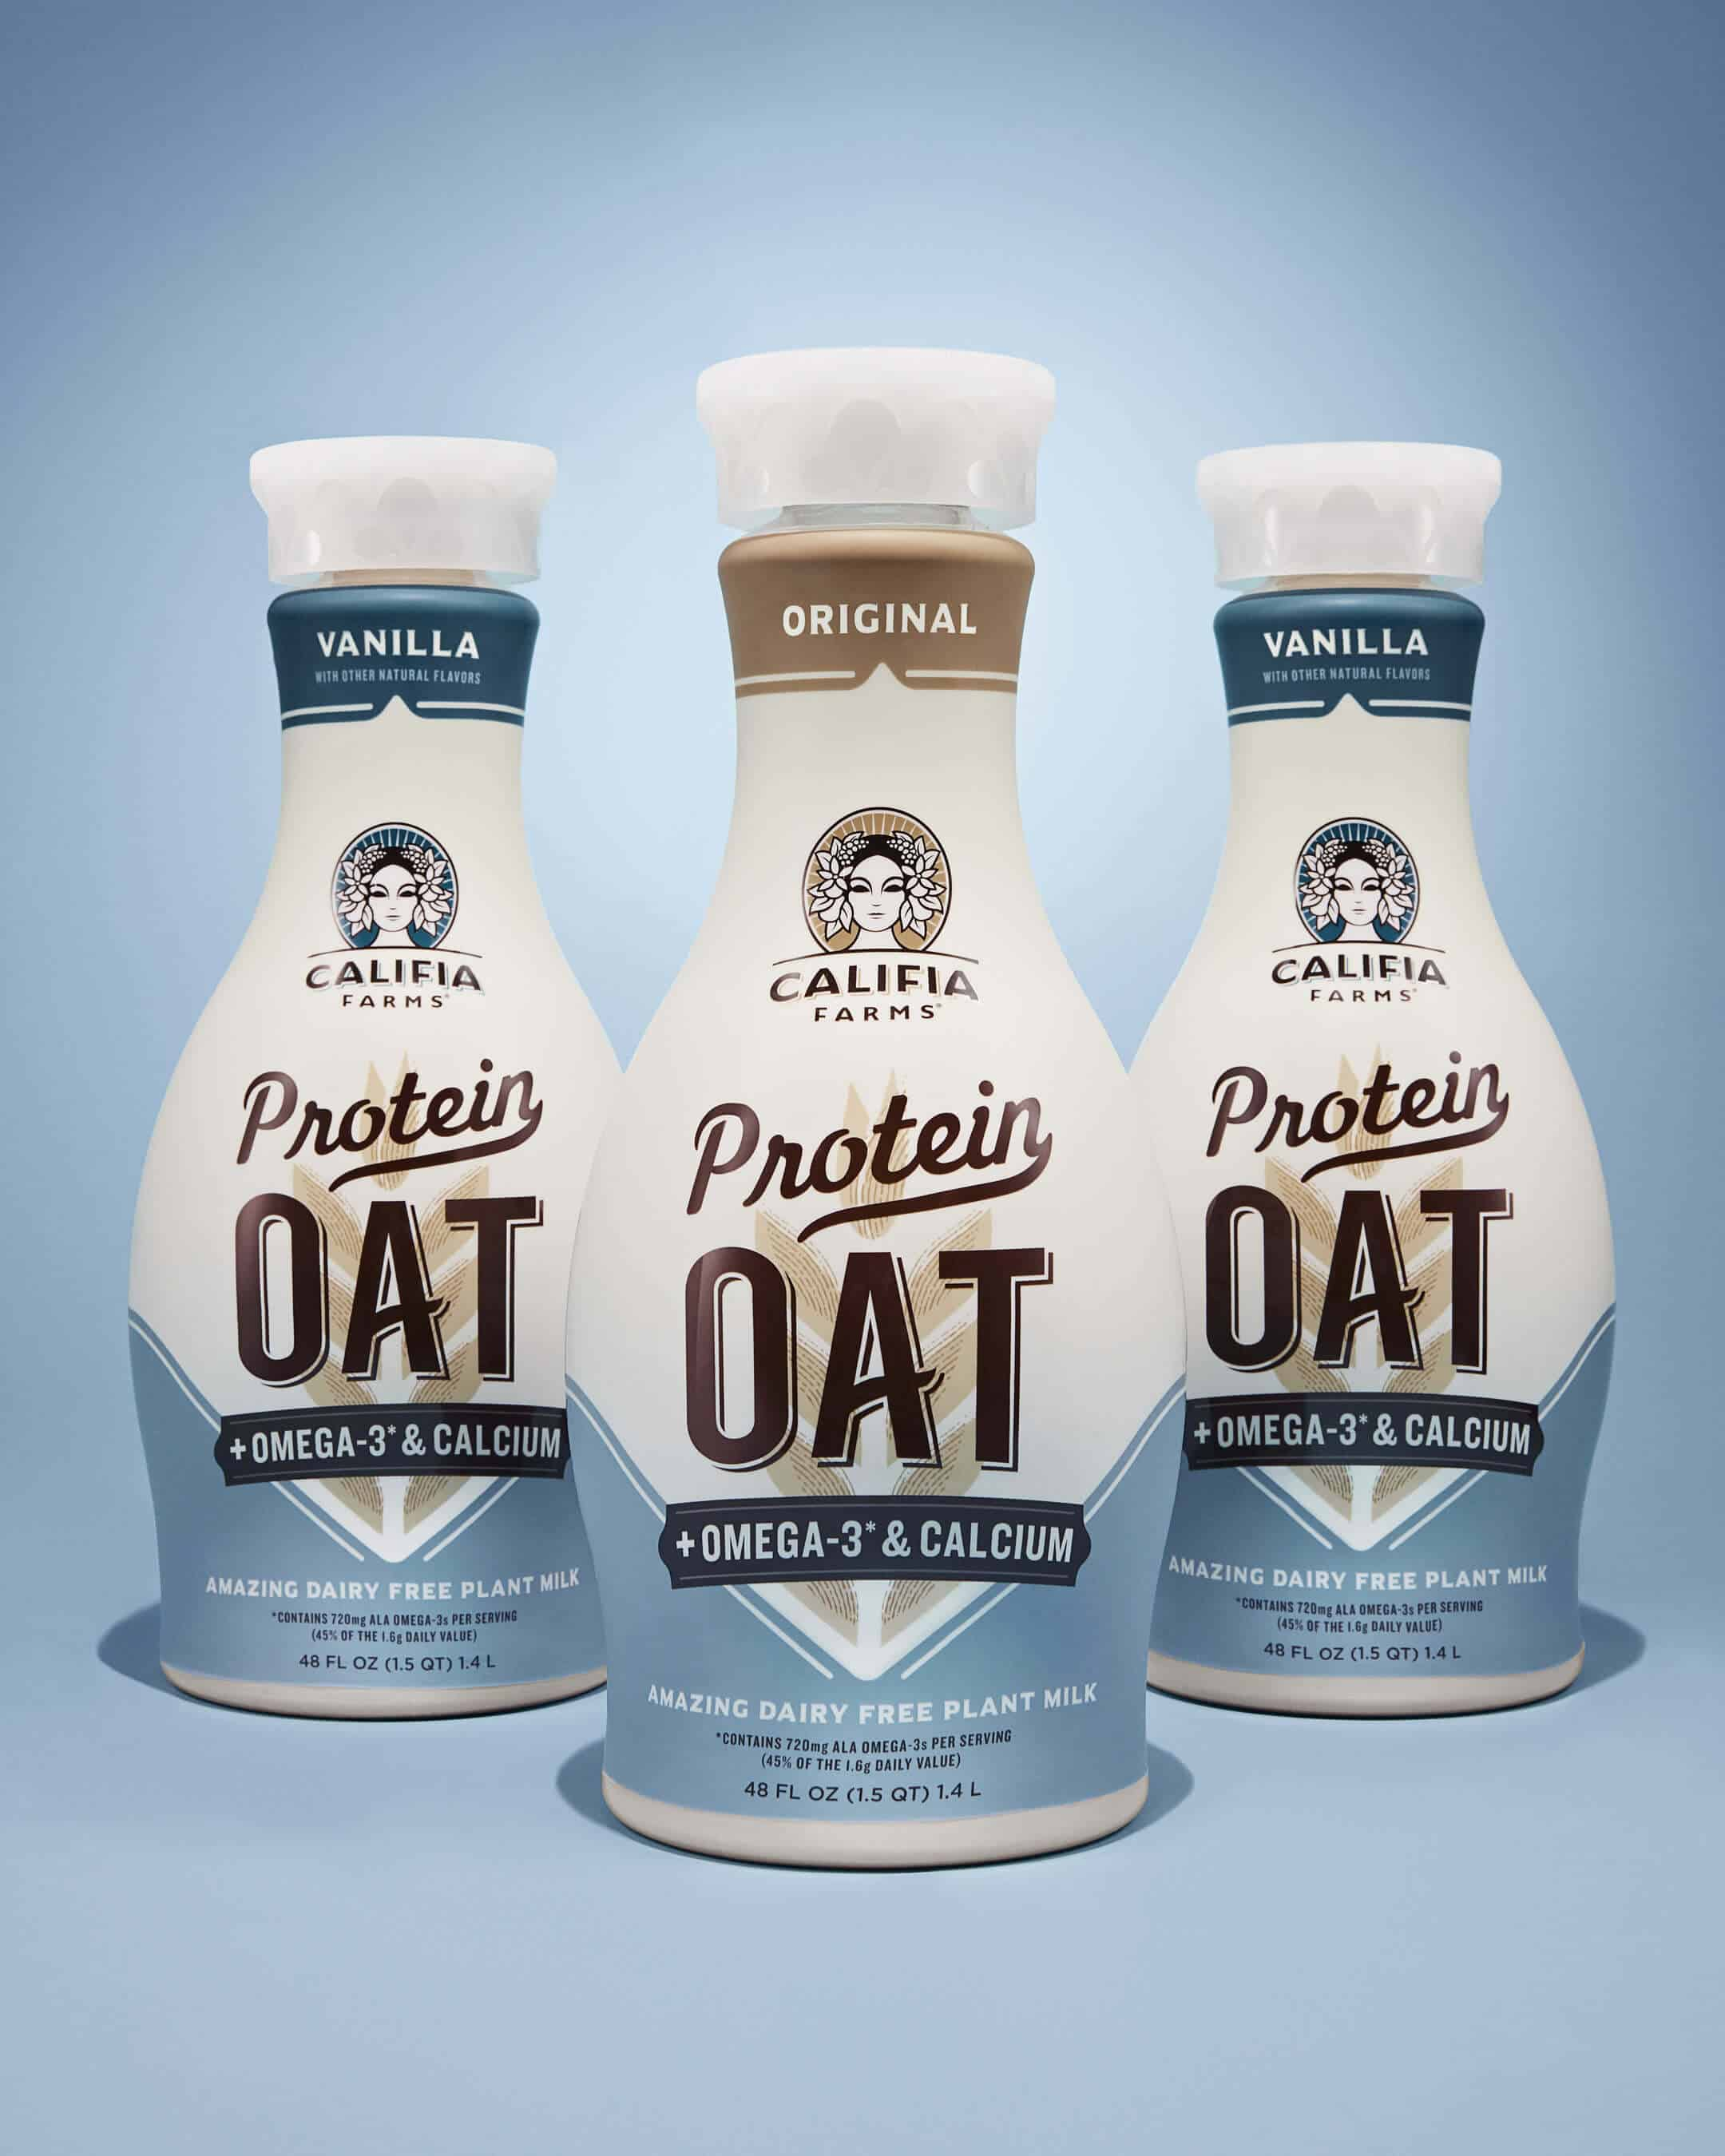 Califia Farms Protein Oat Press Release